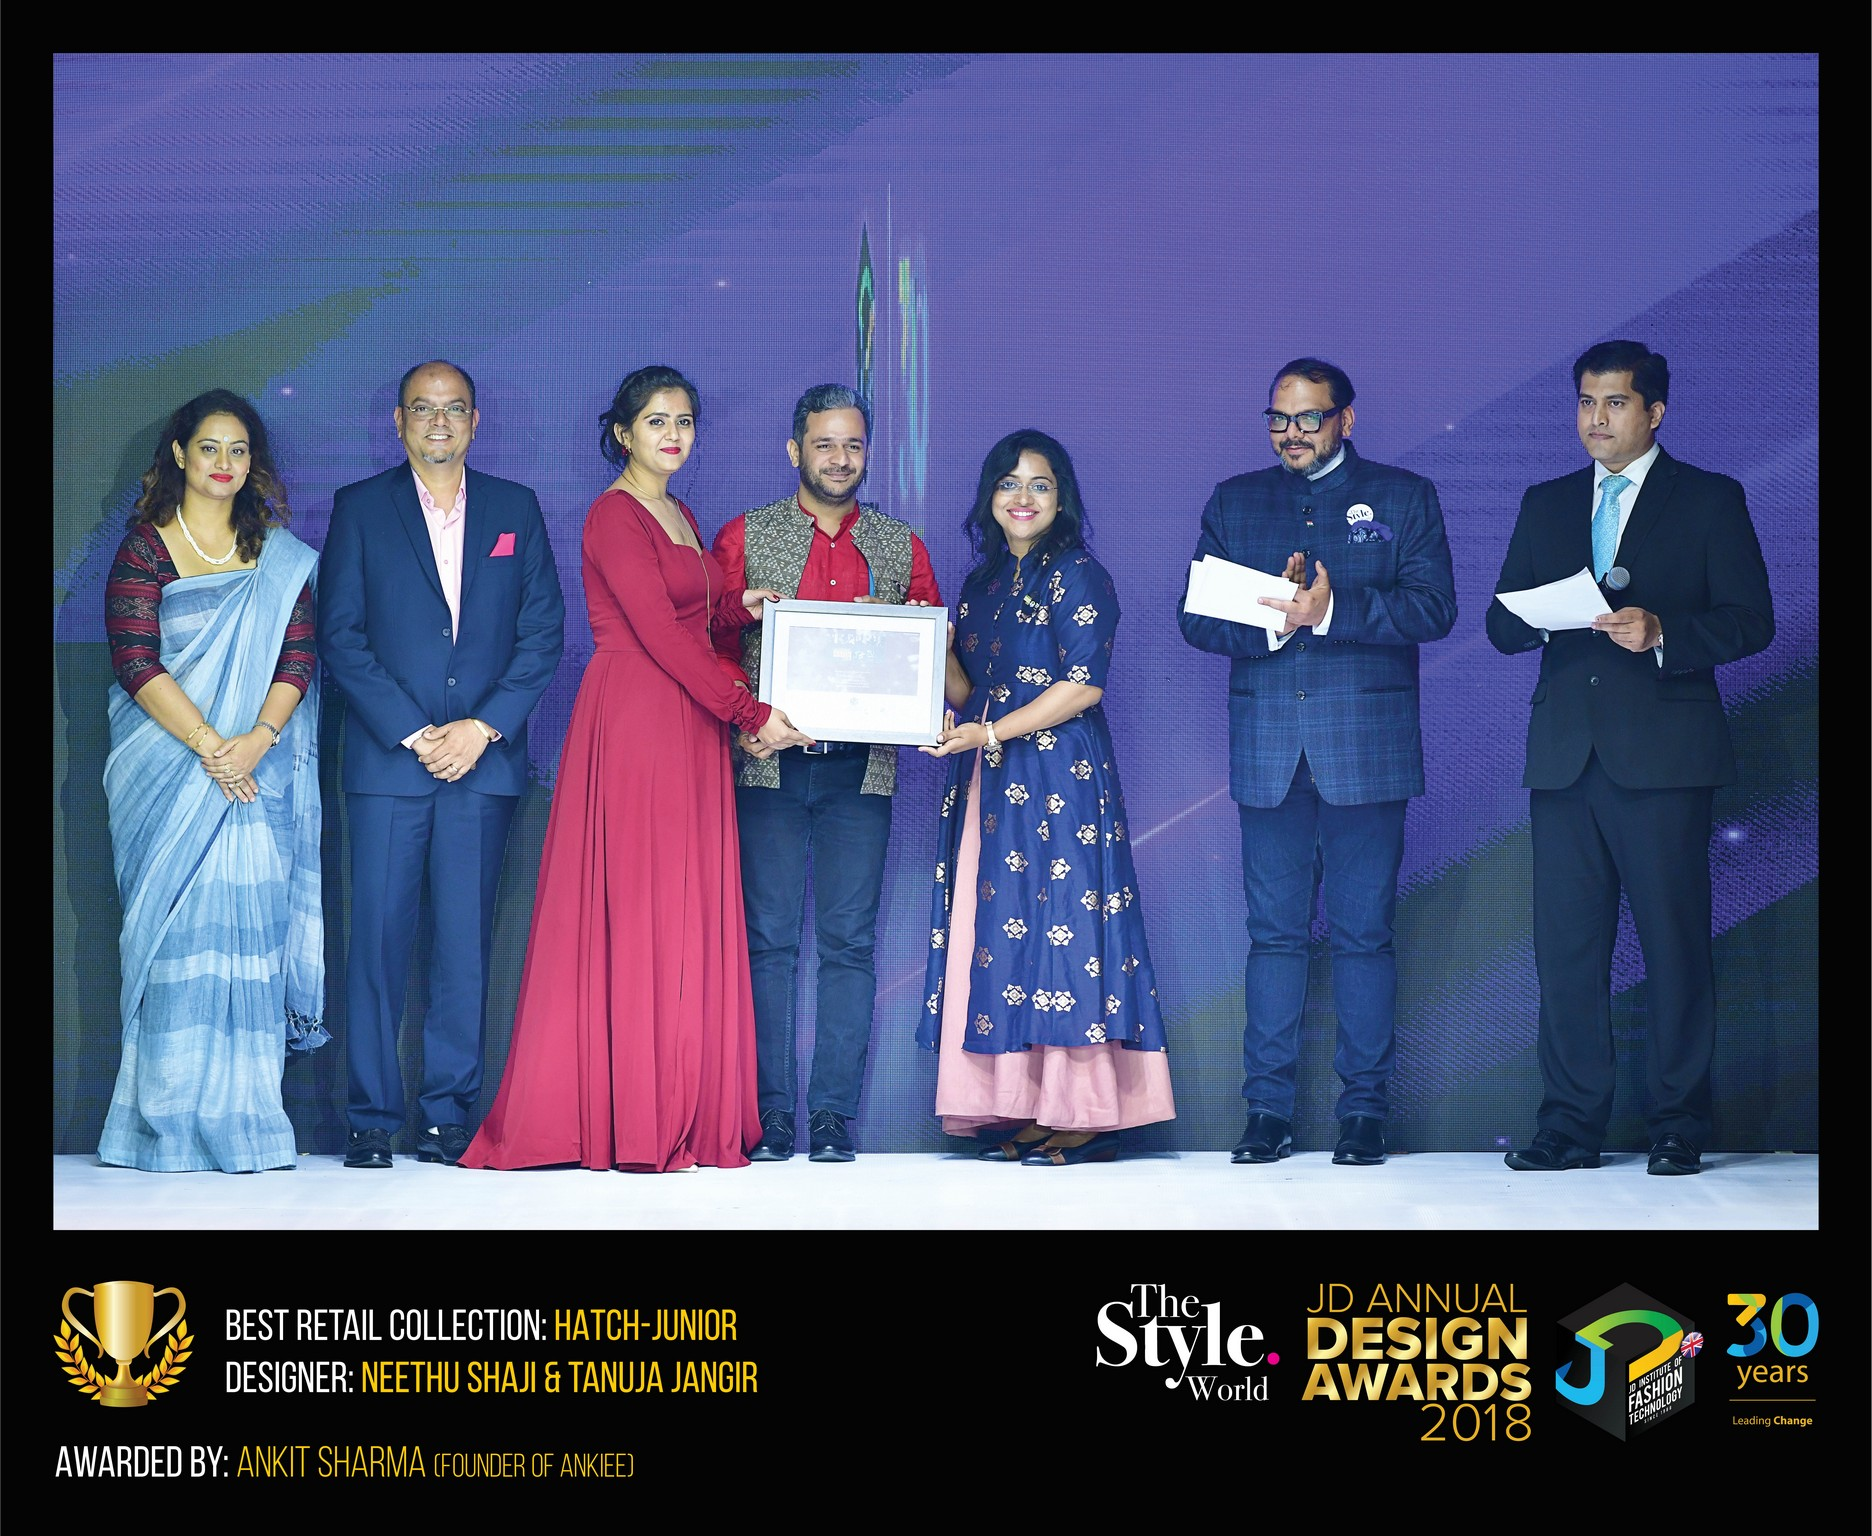 Hatch: Junior on Board – Change – JD Annual Design Awards 2018 | Designer: Neethu Shaji and Tanuja Jangir | Photography : Jerin Nath (@jerin_nath) hatch - HATCH JUNIOR 1 - Hatch: Junior on Board – Change – JD Annual Design Awards 2018